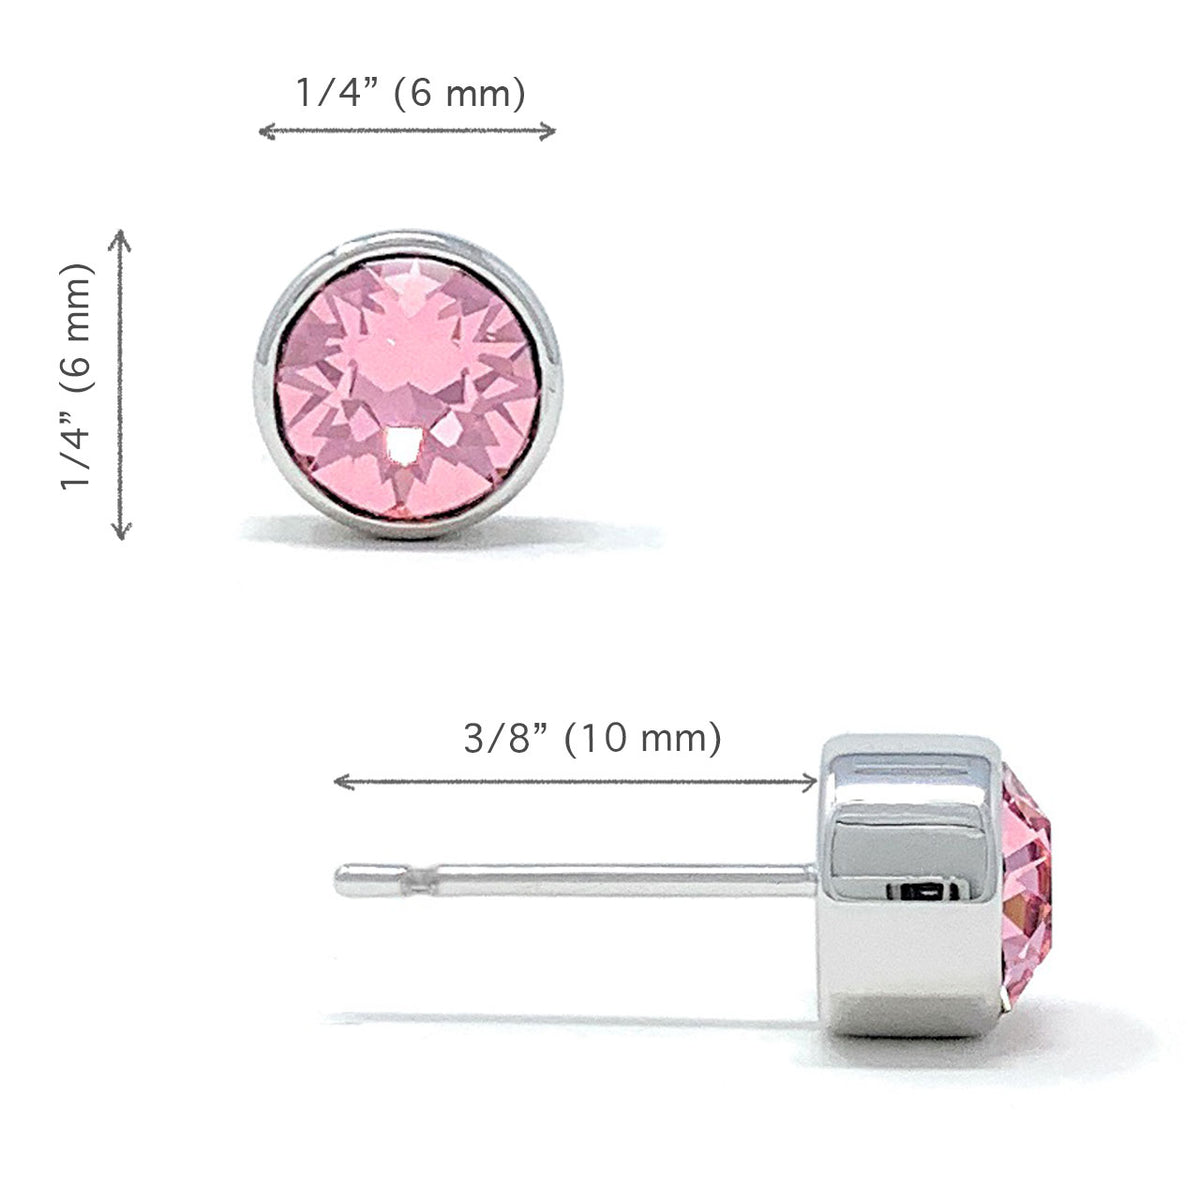 Harley Small Stud Earrings with Pink Light Rose Round Crystals from Swarovski Silver Toned Rhodium Plated - Ed Heart